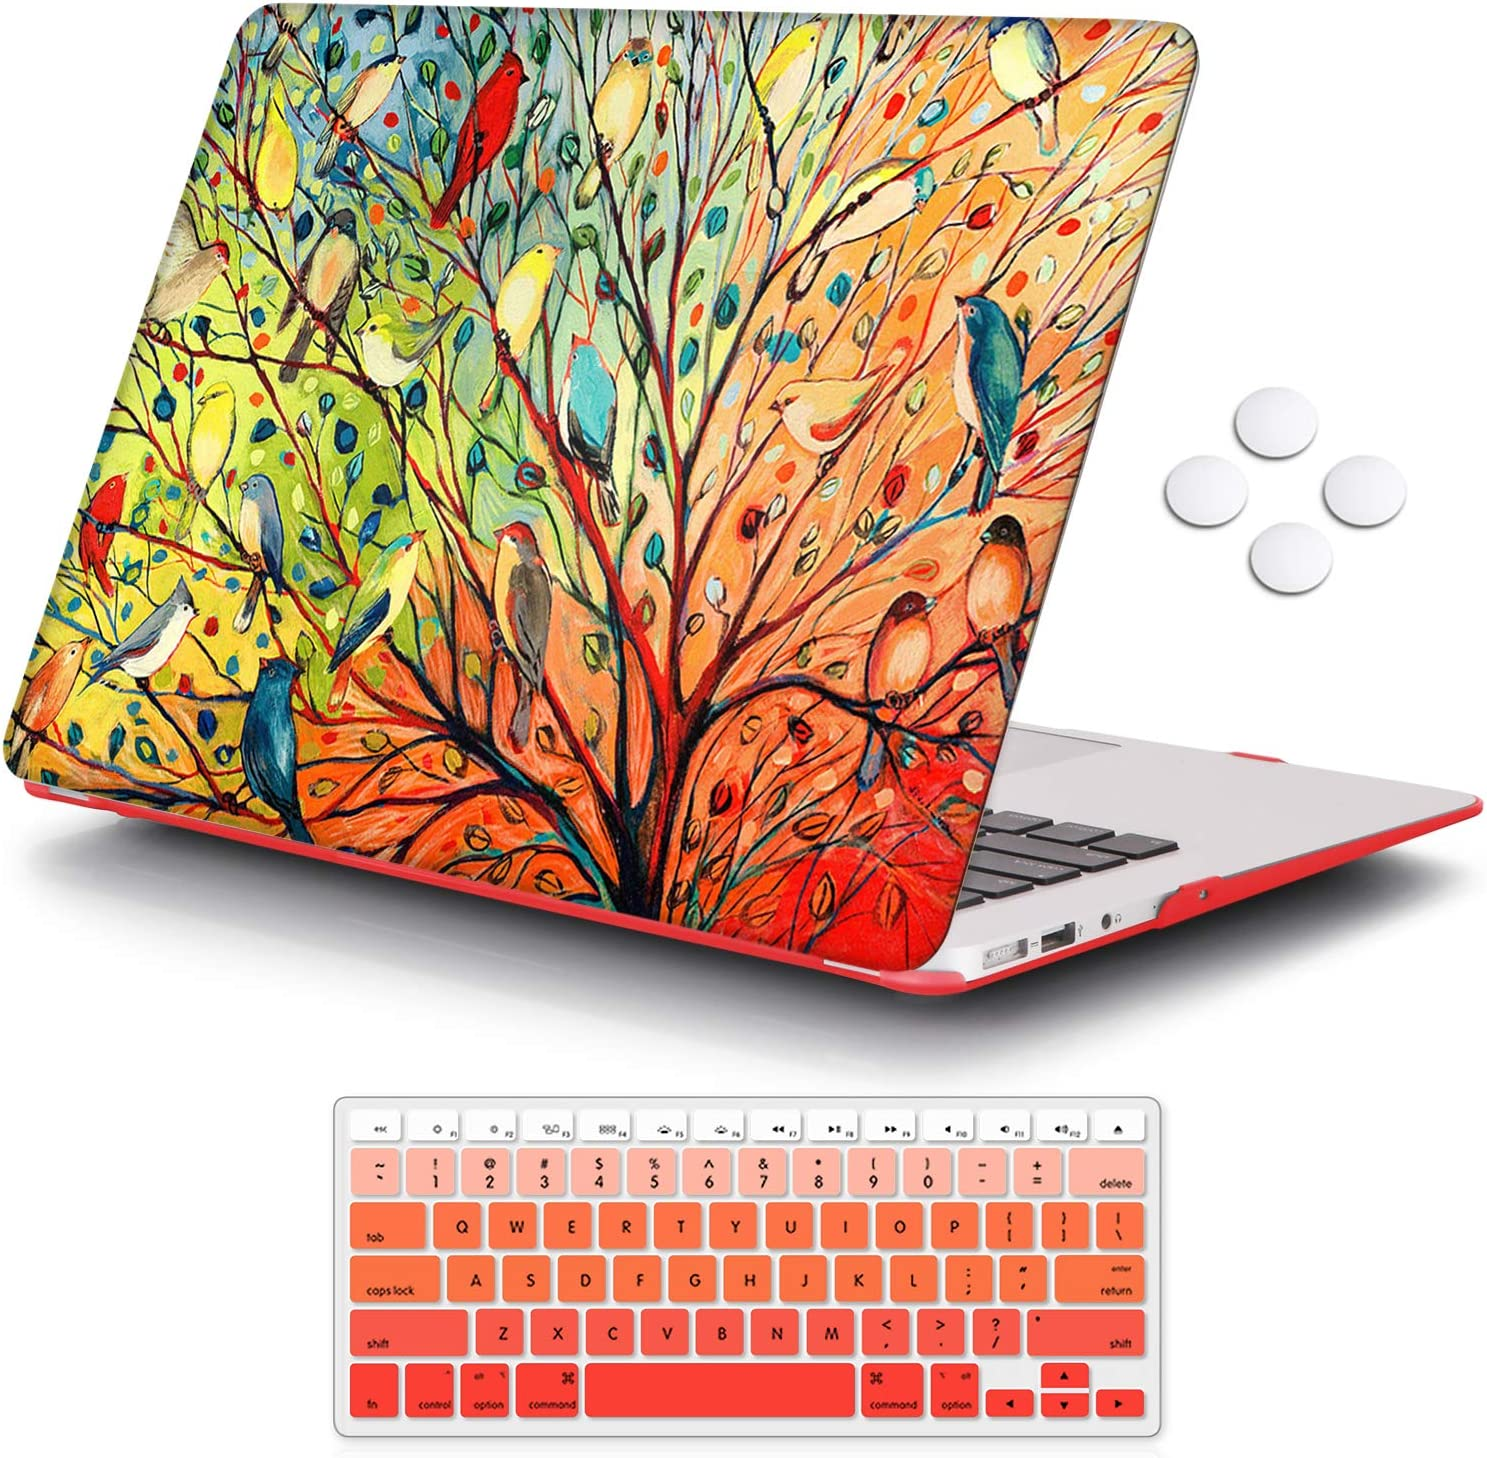 iCasso MacBook Air 13 inch Case (Release 2010-2017 Older Version), Plastic Pattern Hard Shell Protective Case & Keyboard Cover Only Compatible with MacBook Air 13 Inch Model A1369/A1466 - Birds